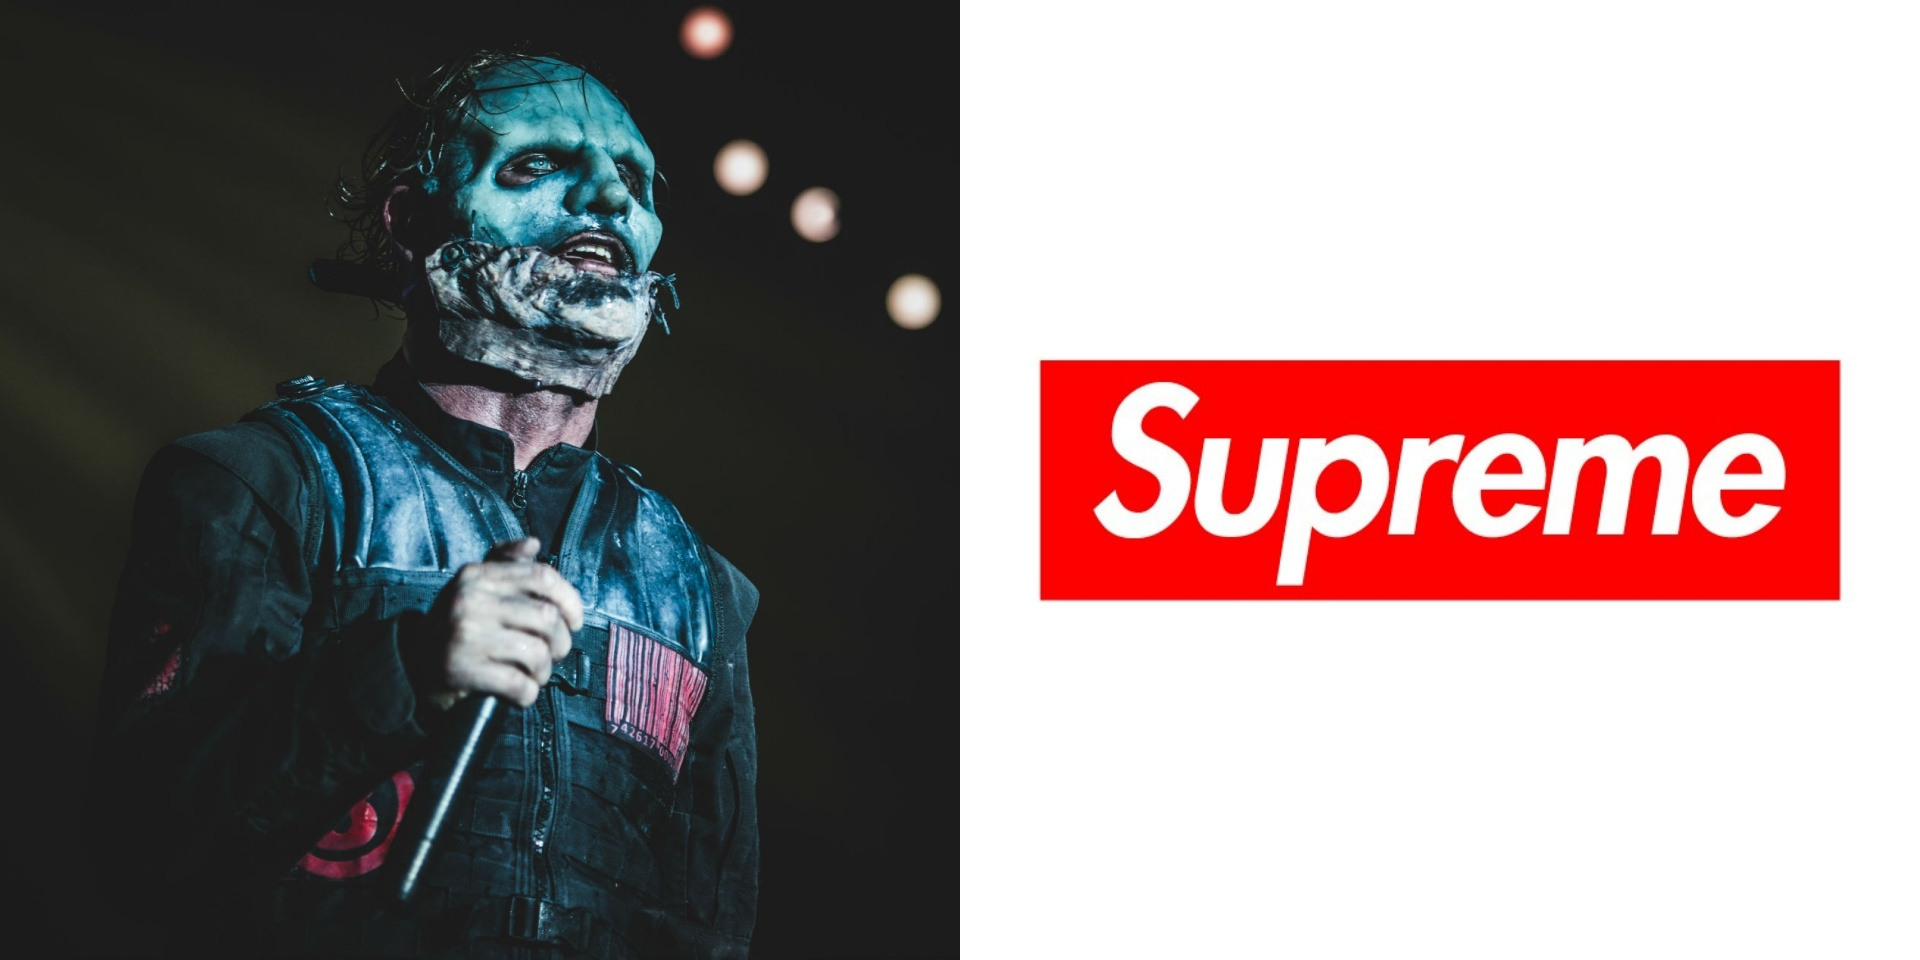 Could Slipknot be releasing a collaboration with Supreme?